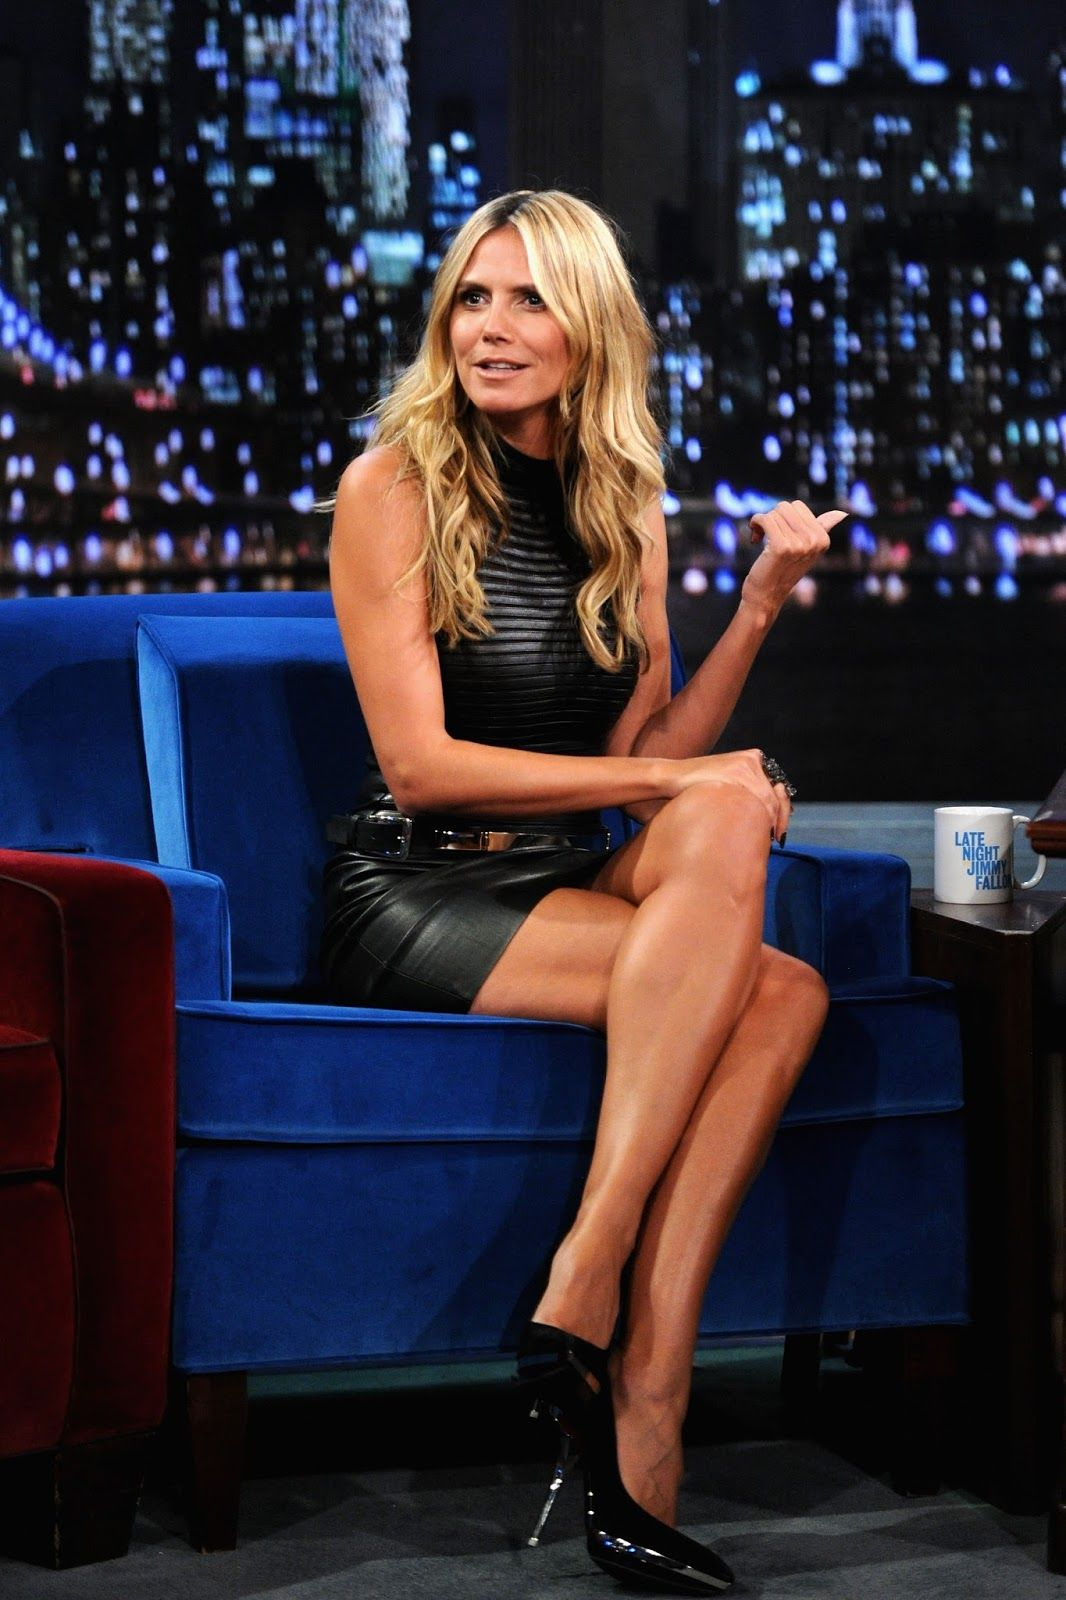 Heidi Klum shows her sexy legs to Jimmy Fallon and his TV audience.